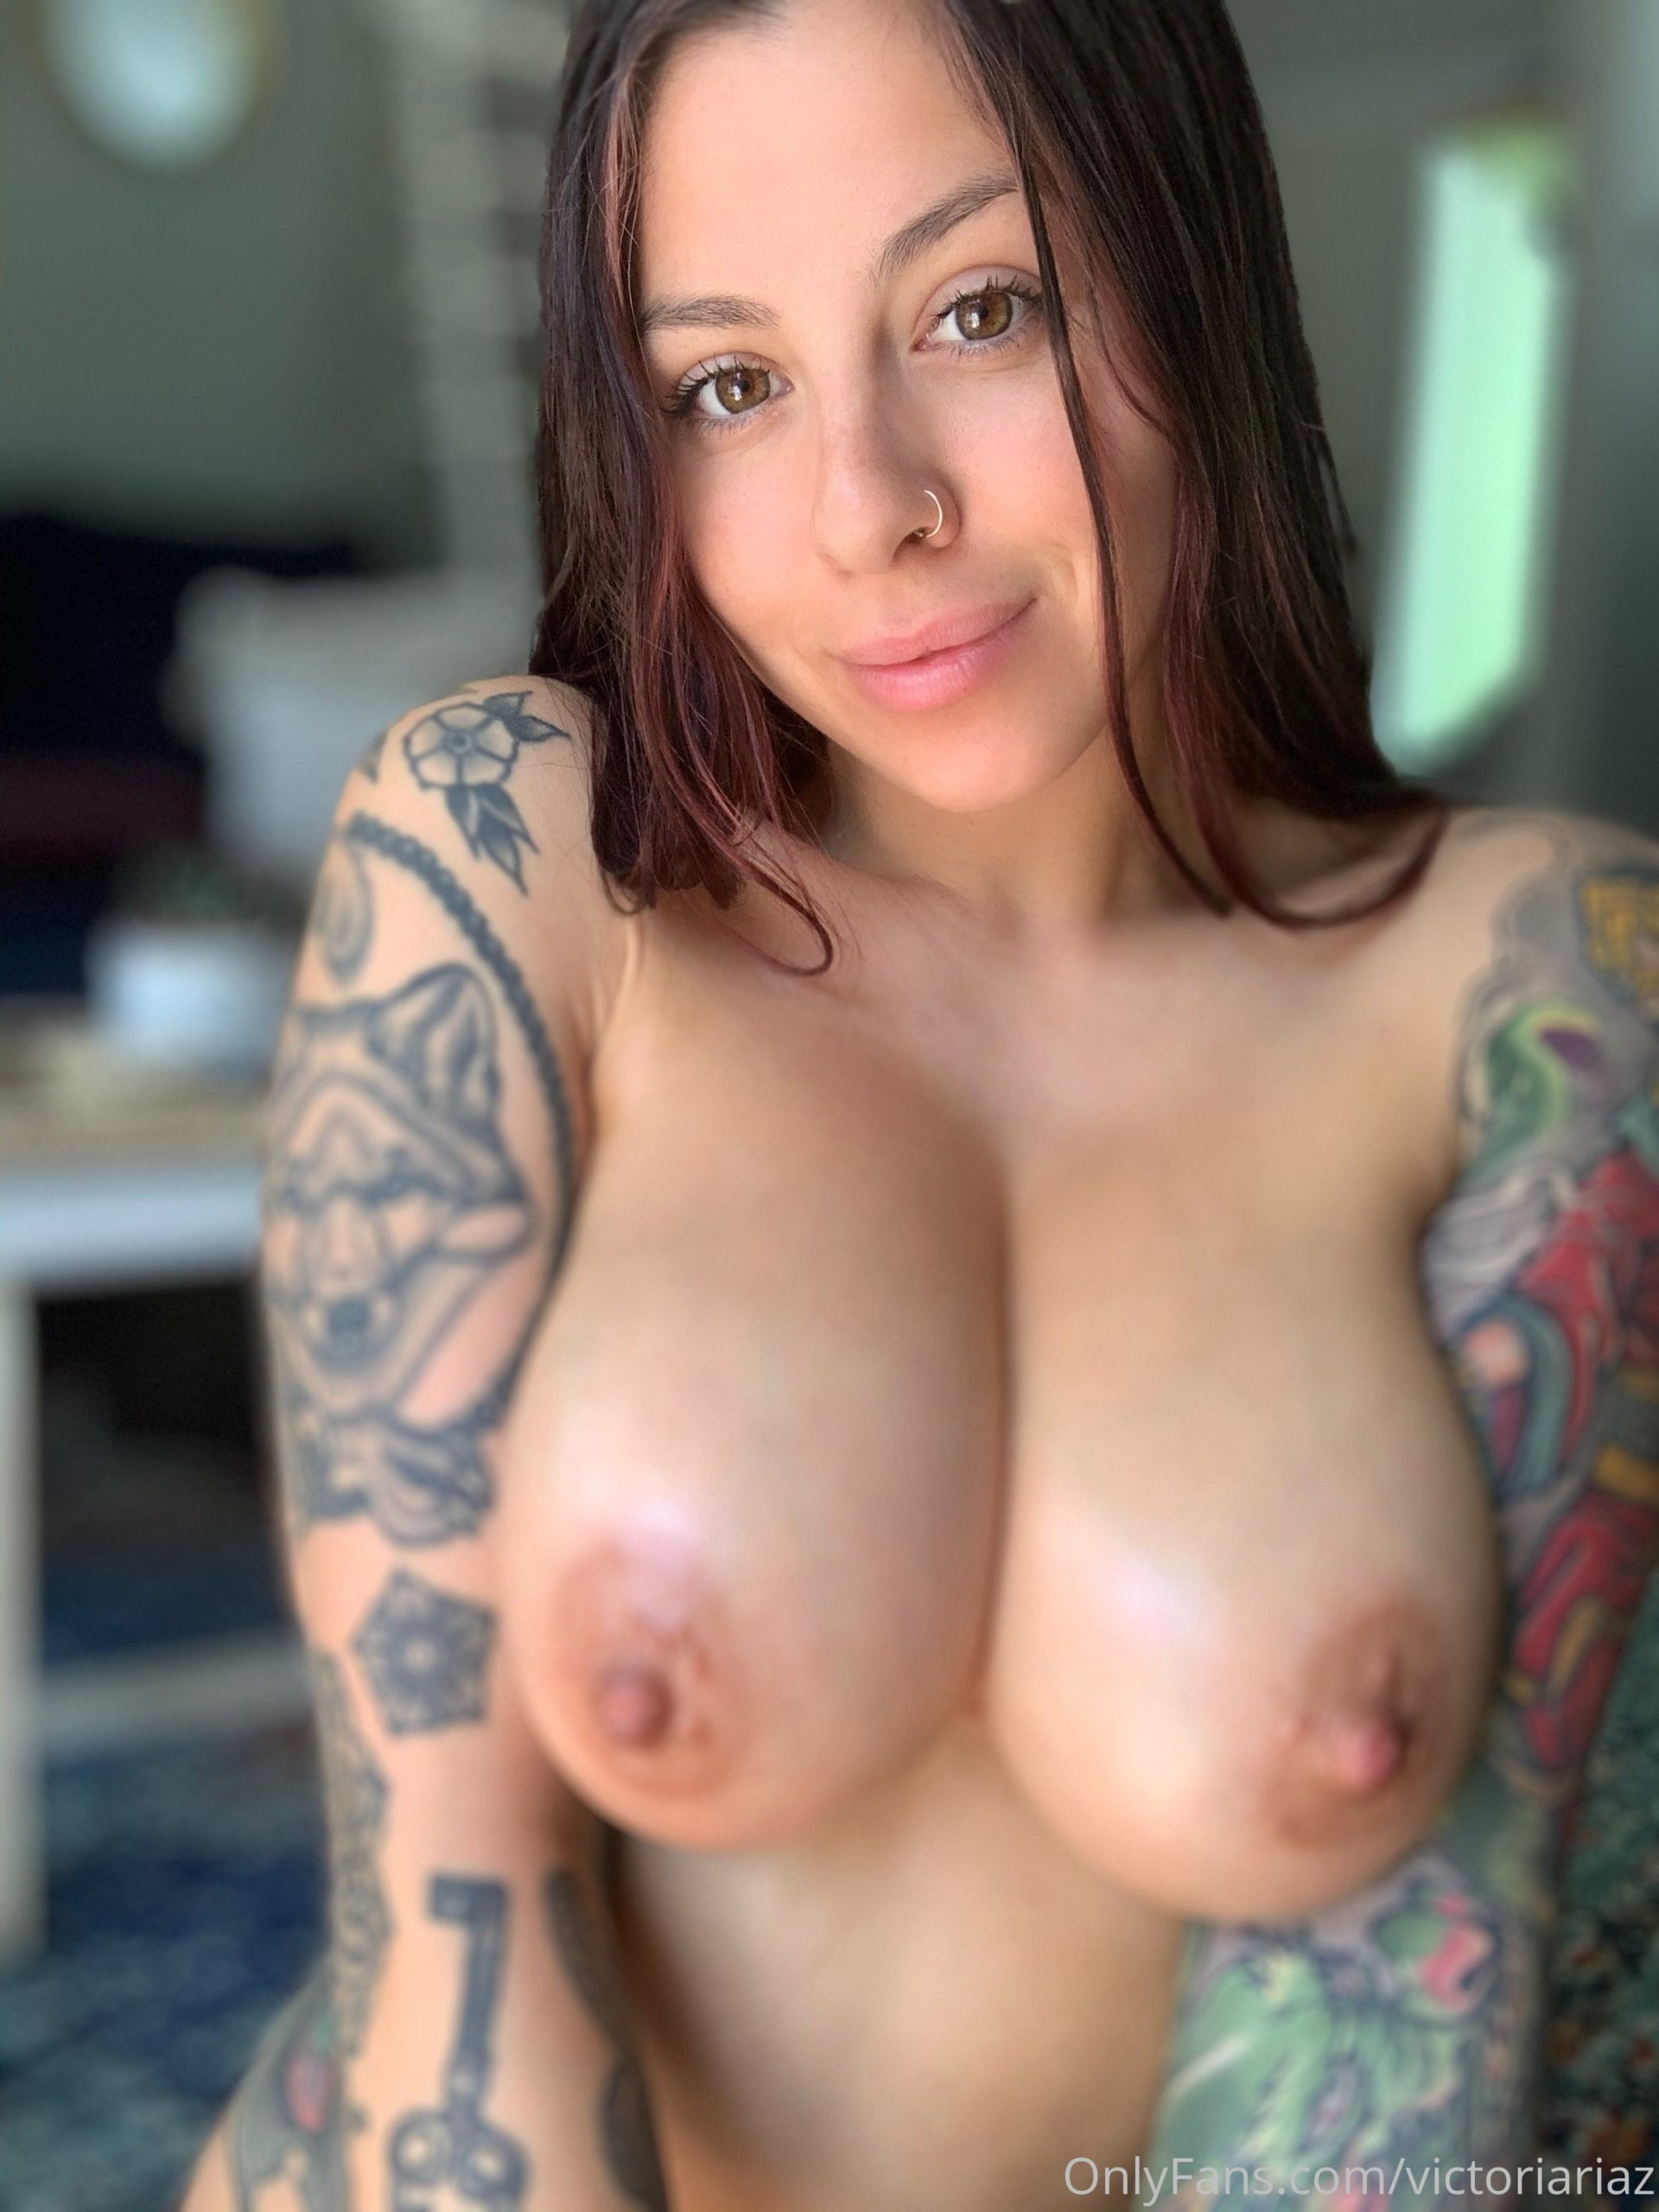 Victoria Riaz Onlyfans Nude Gallery Leaked